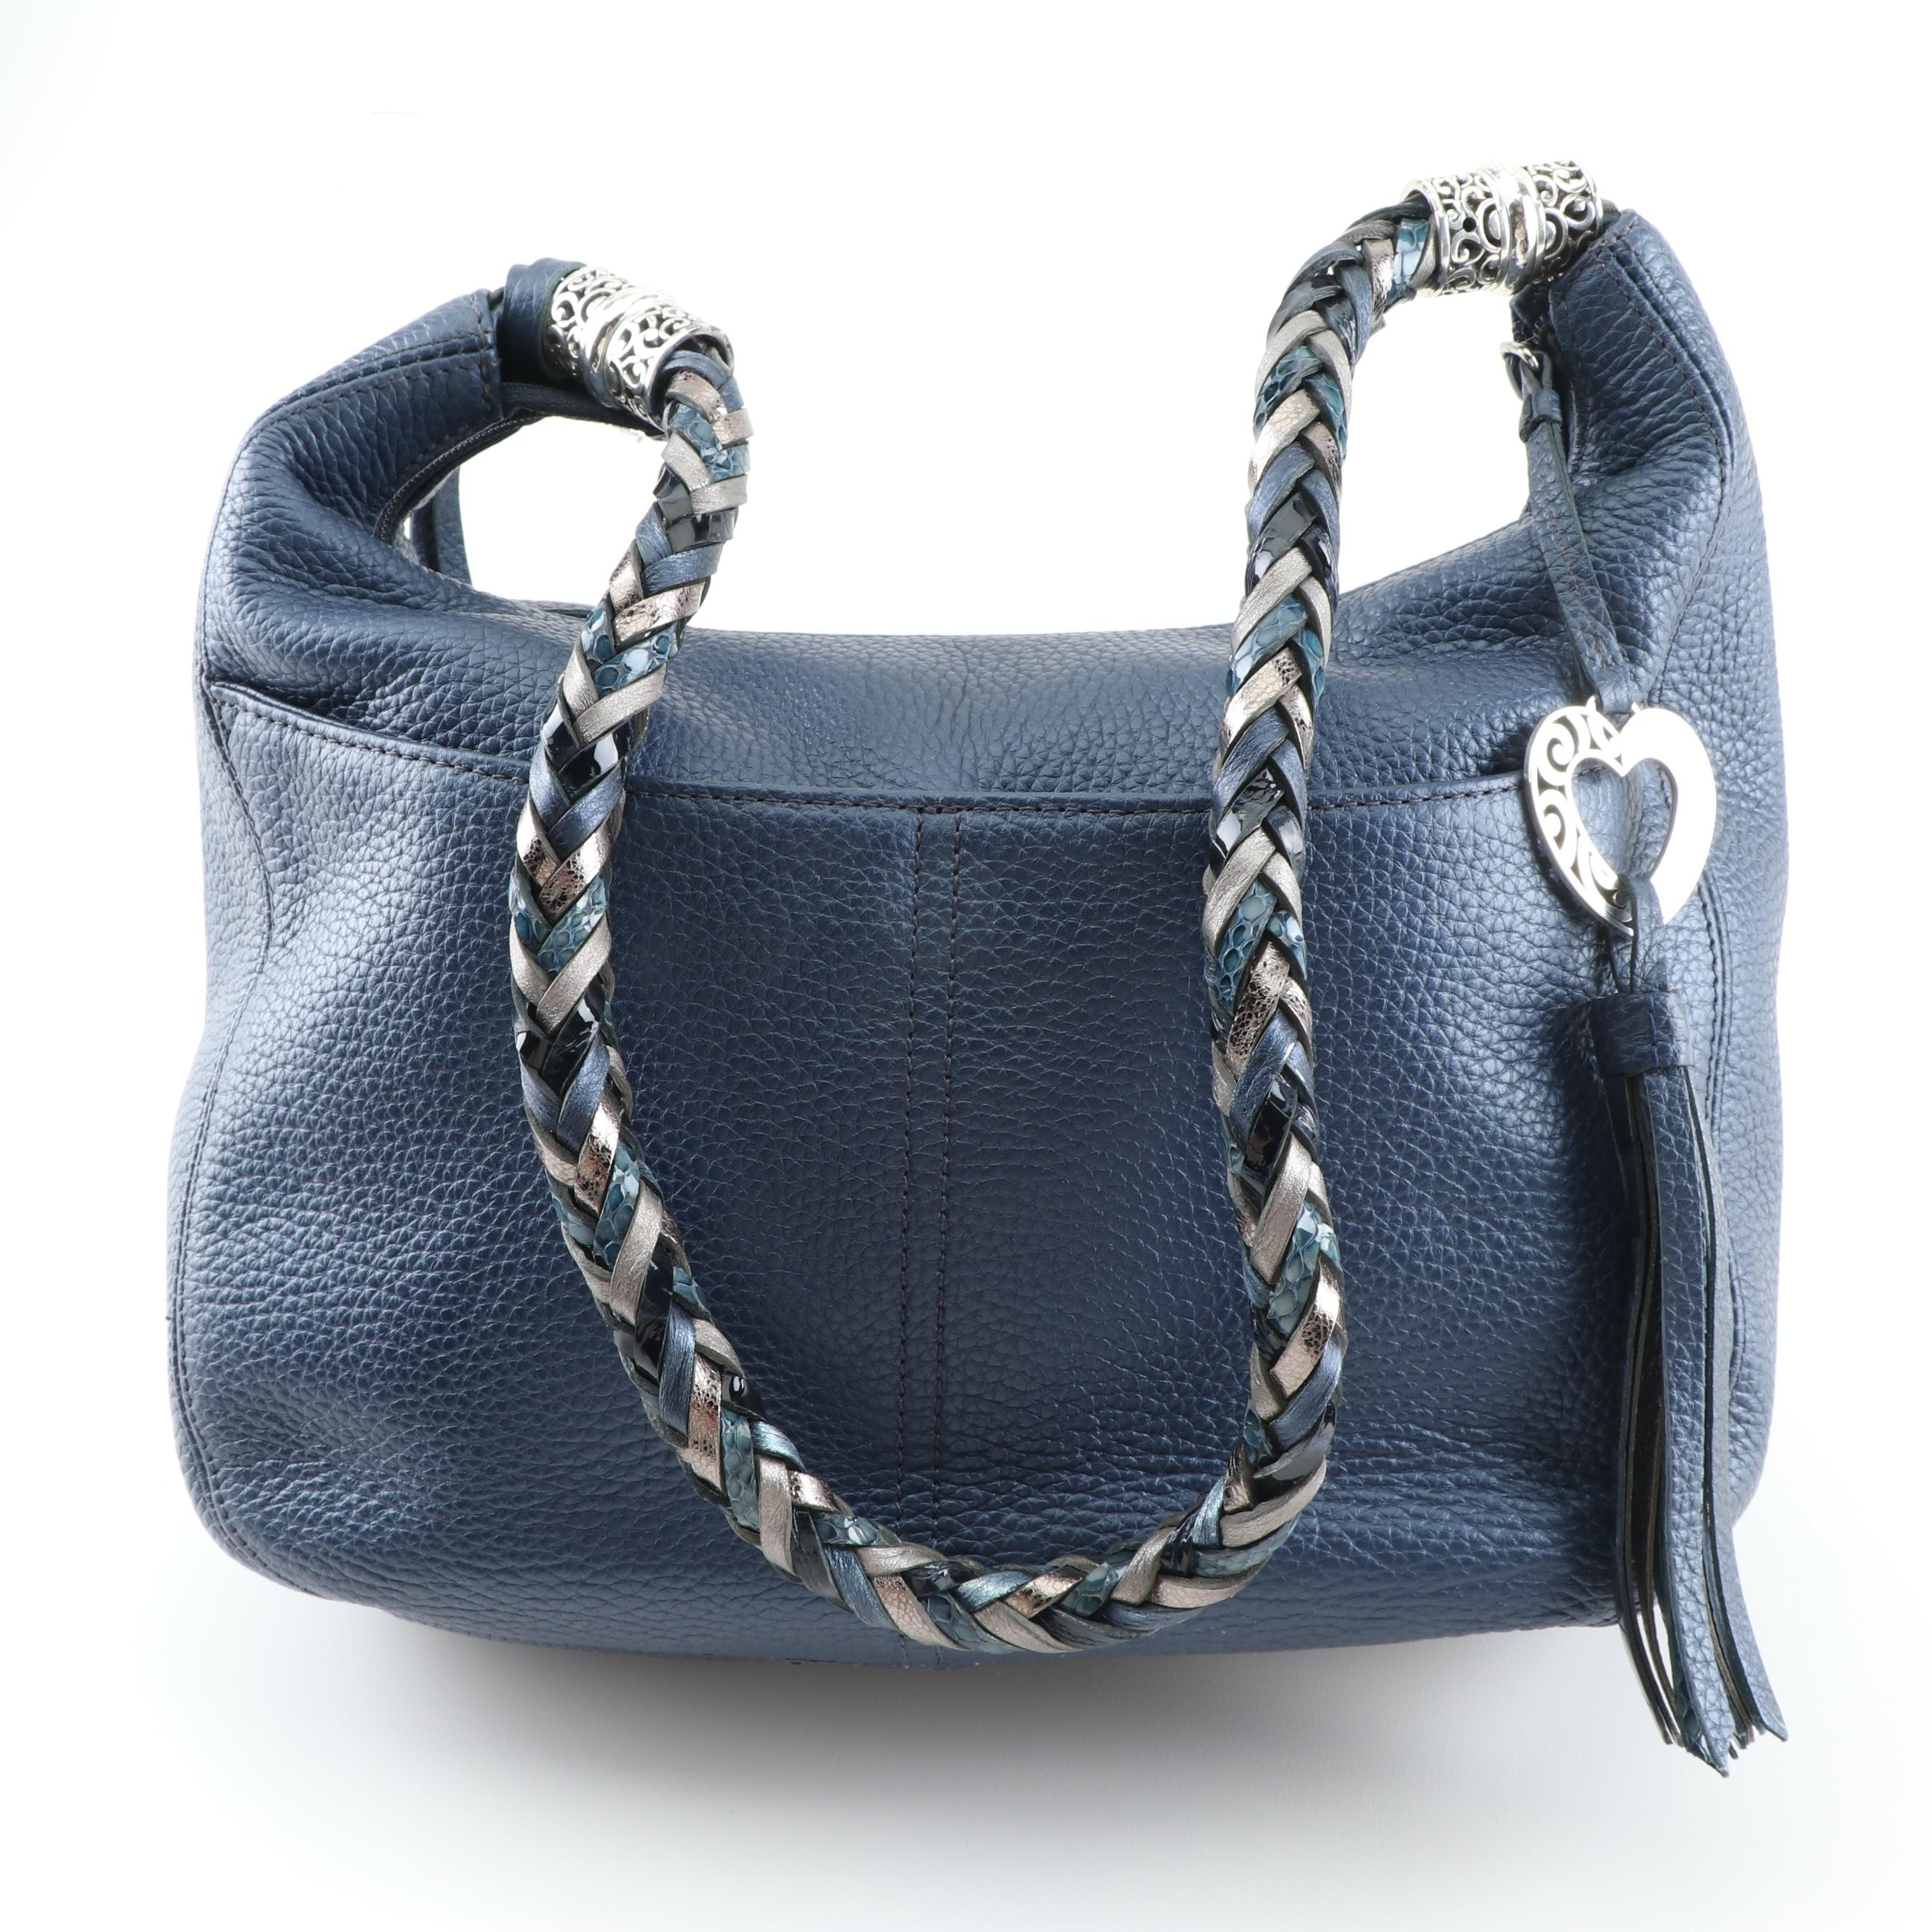 Brighton Deep Blue Pebbled Leather Hobo Bag with Braided Strap